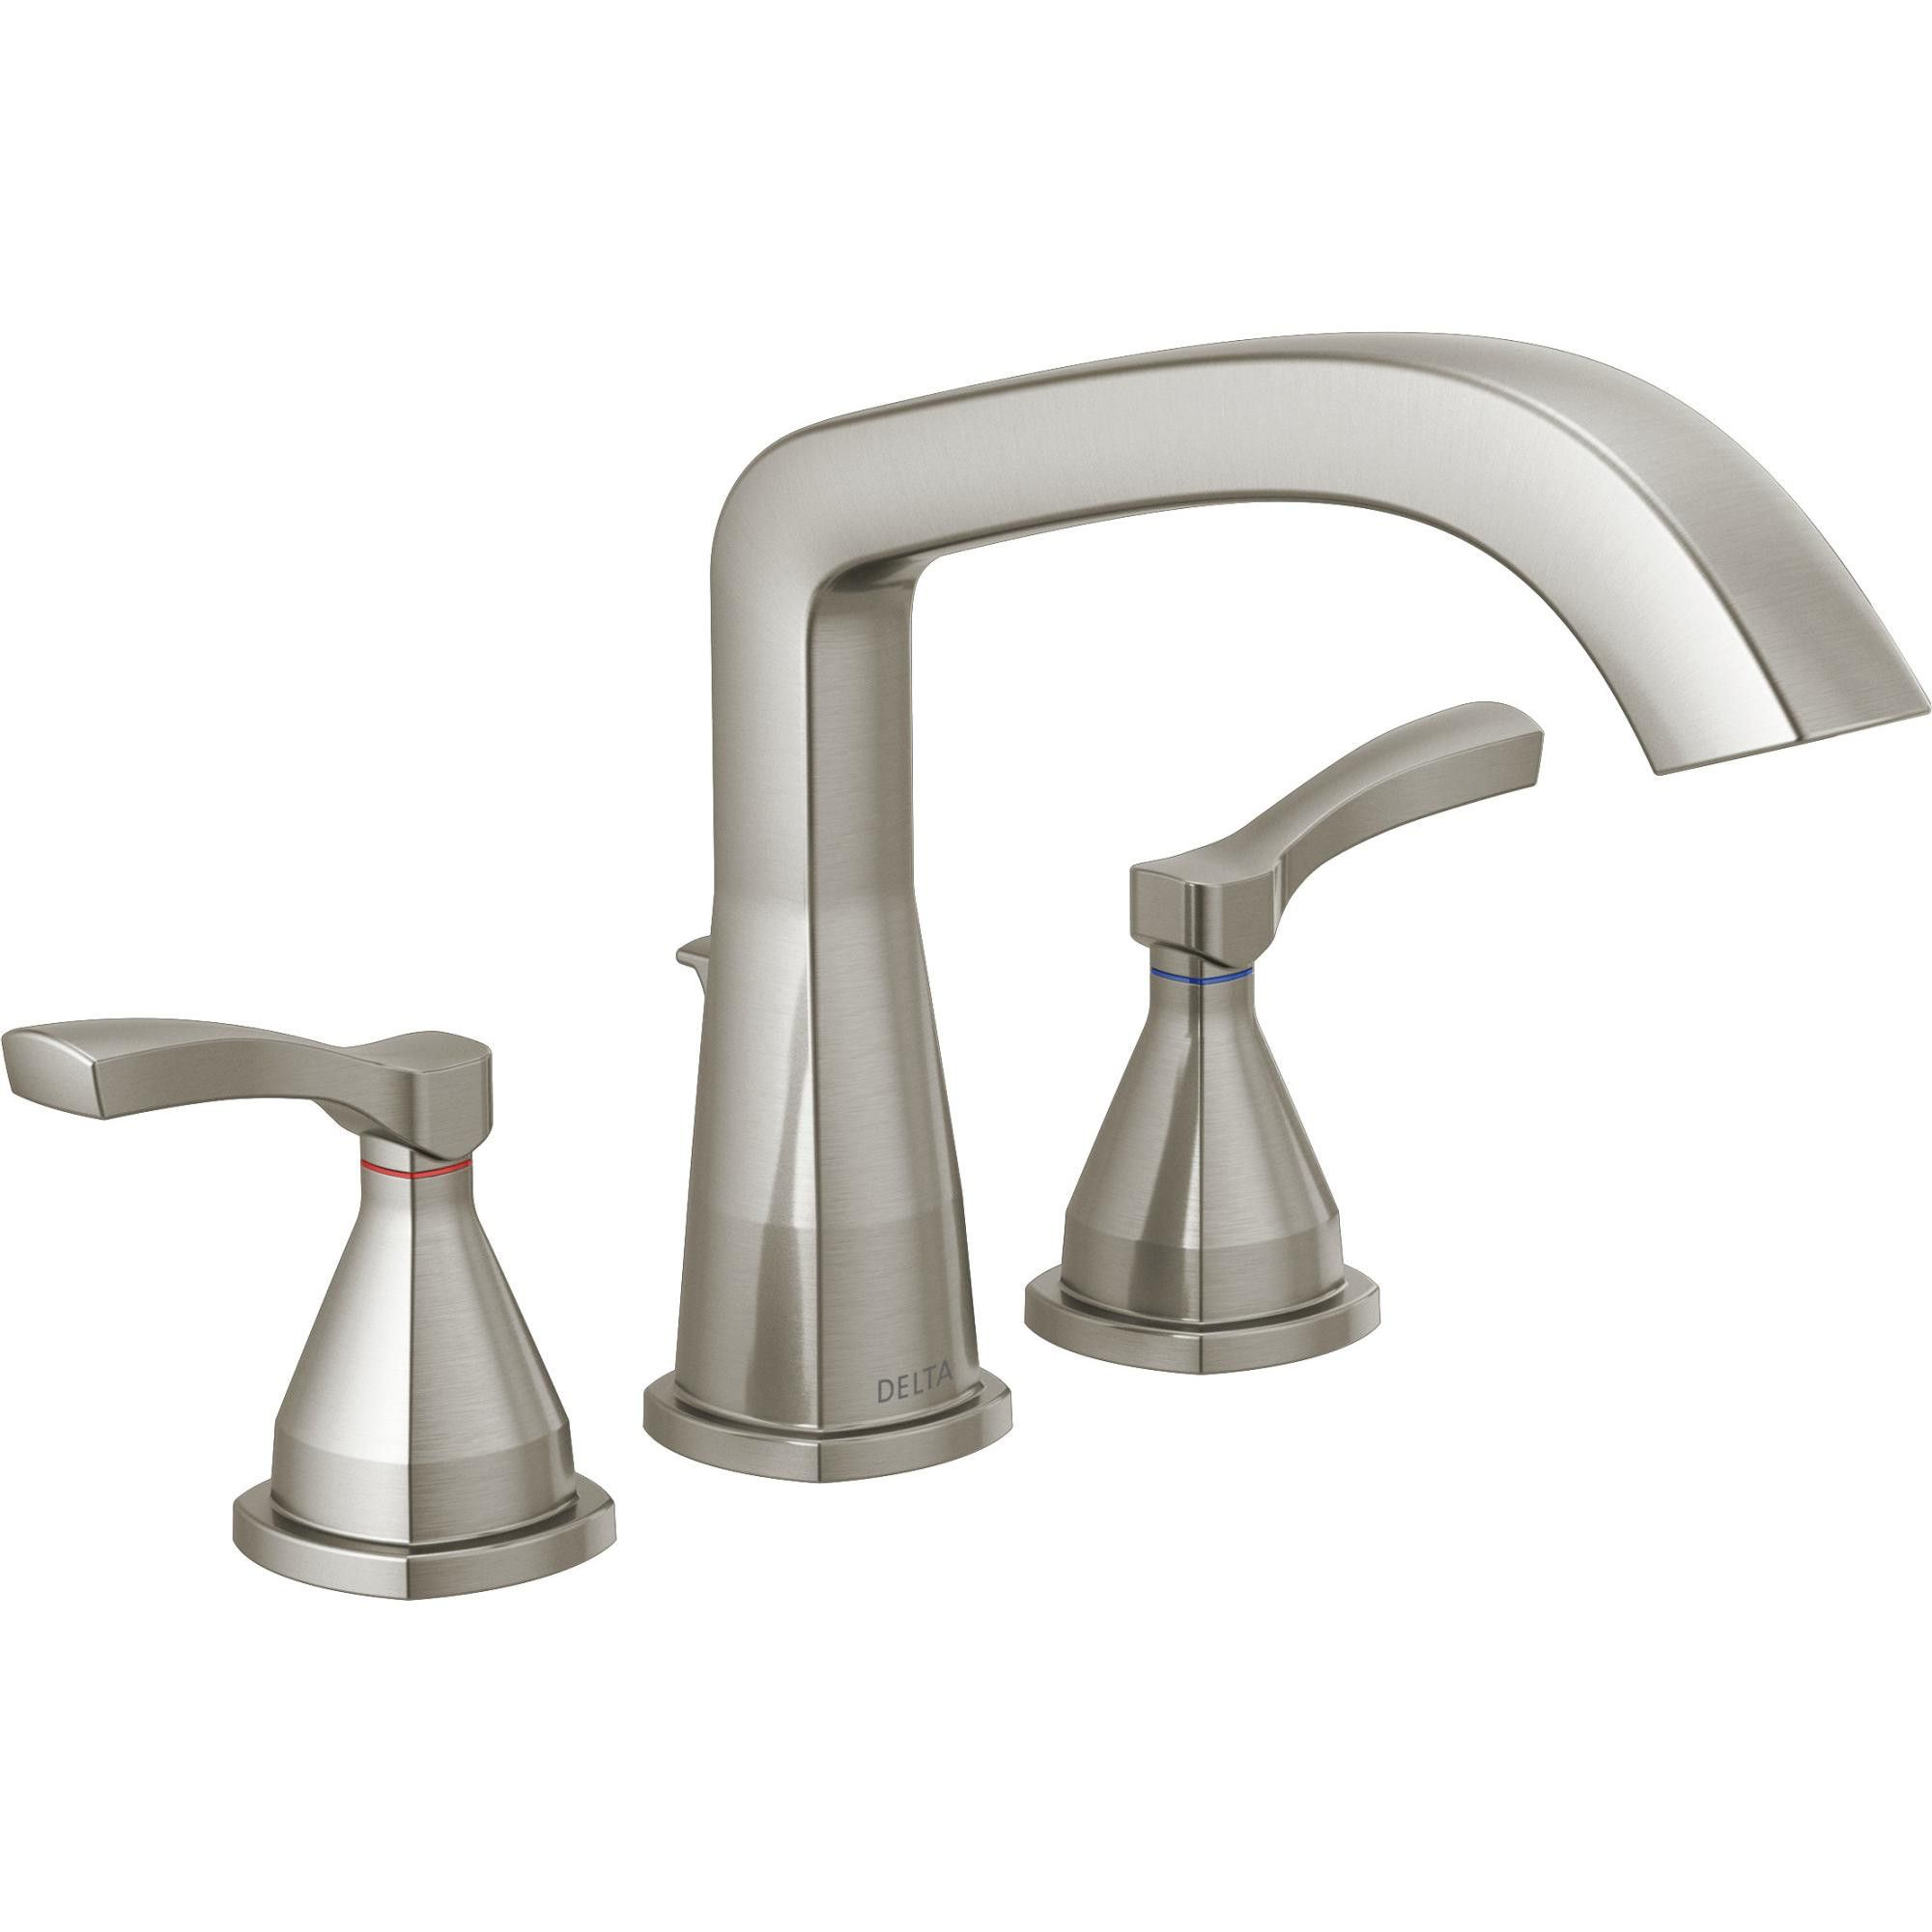 Delta Faucet T2776 Stryke Deck Mounted Roman Tub Filler With Lever